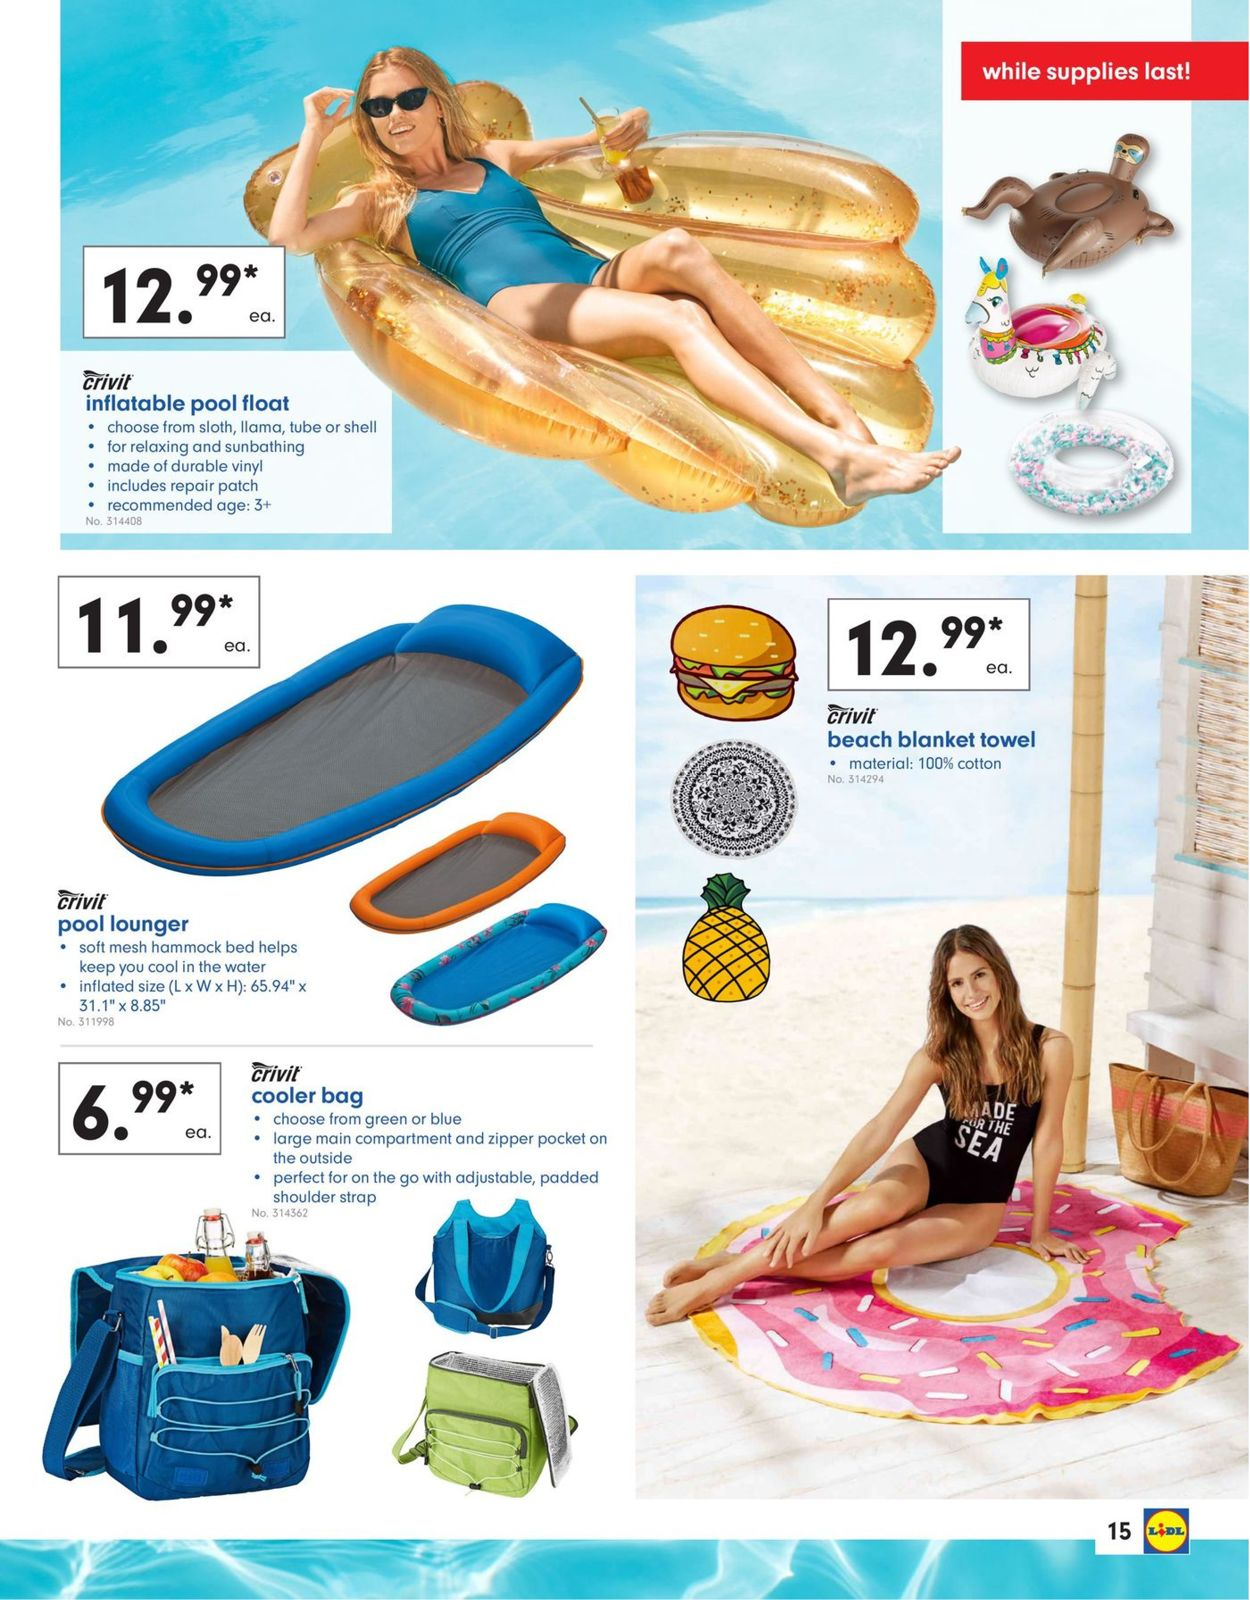 Air lounger lidl Lidl is